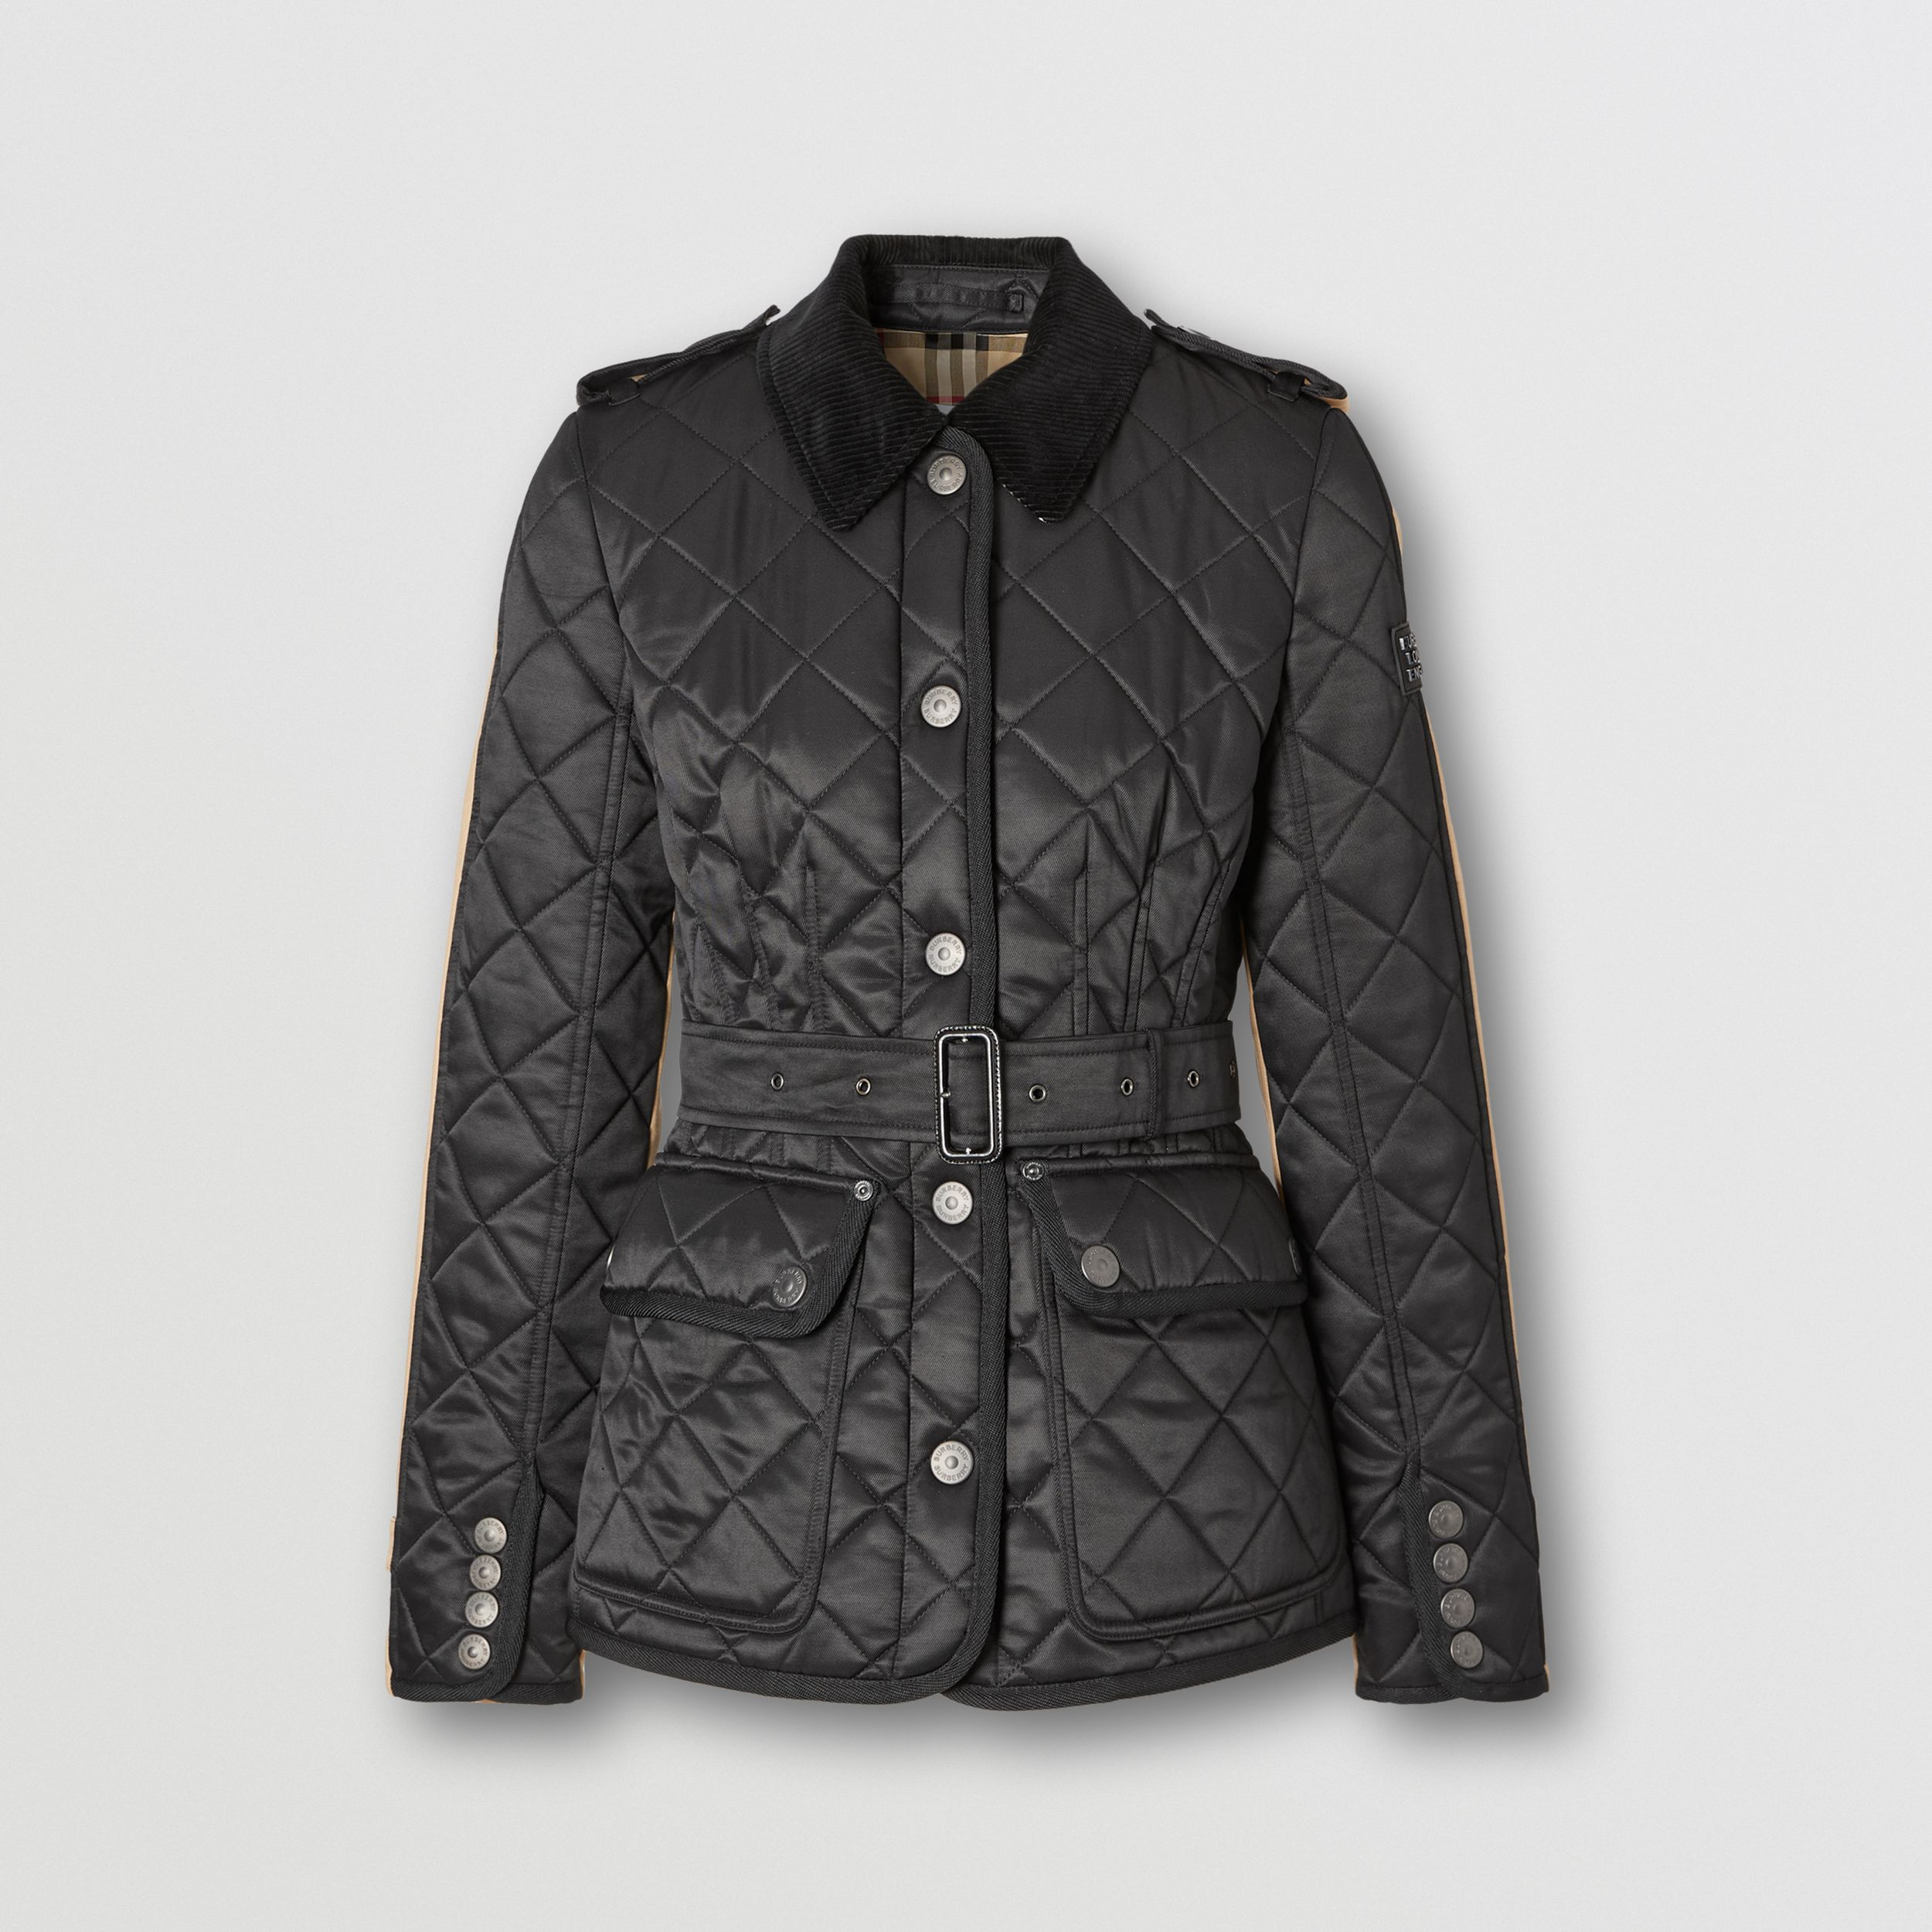 Cotton Gabardine Panel Diamond Quilted Jacket in Black | Burberry - 4